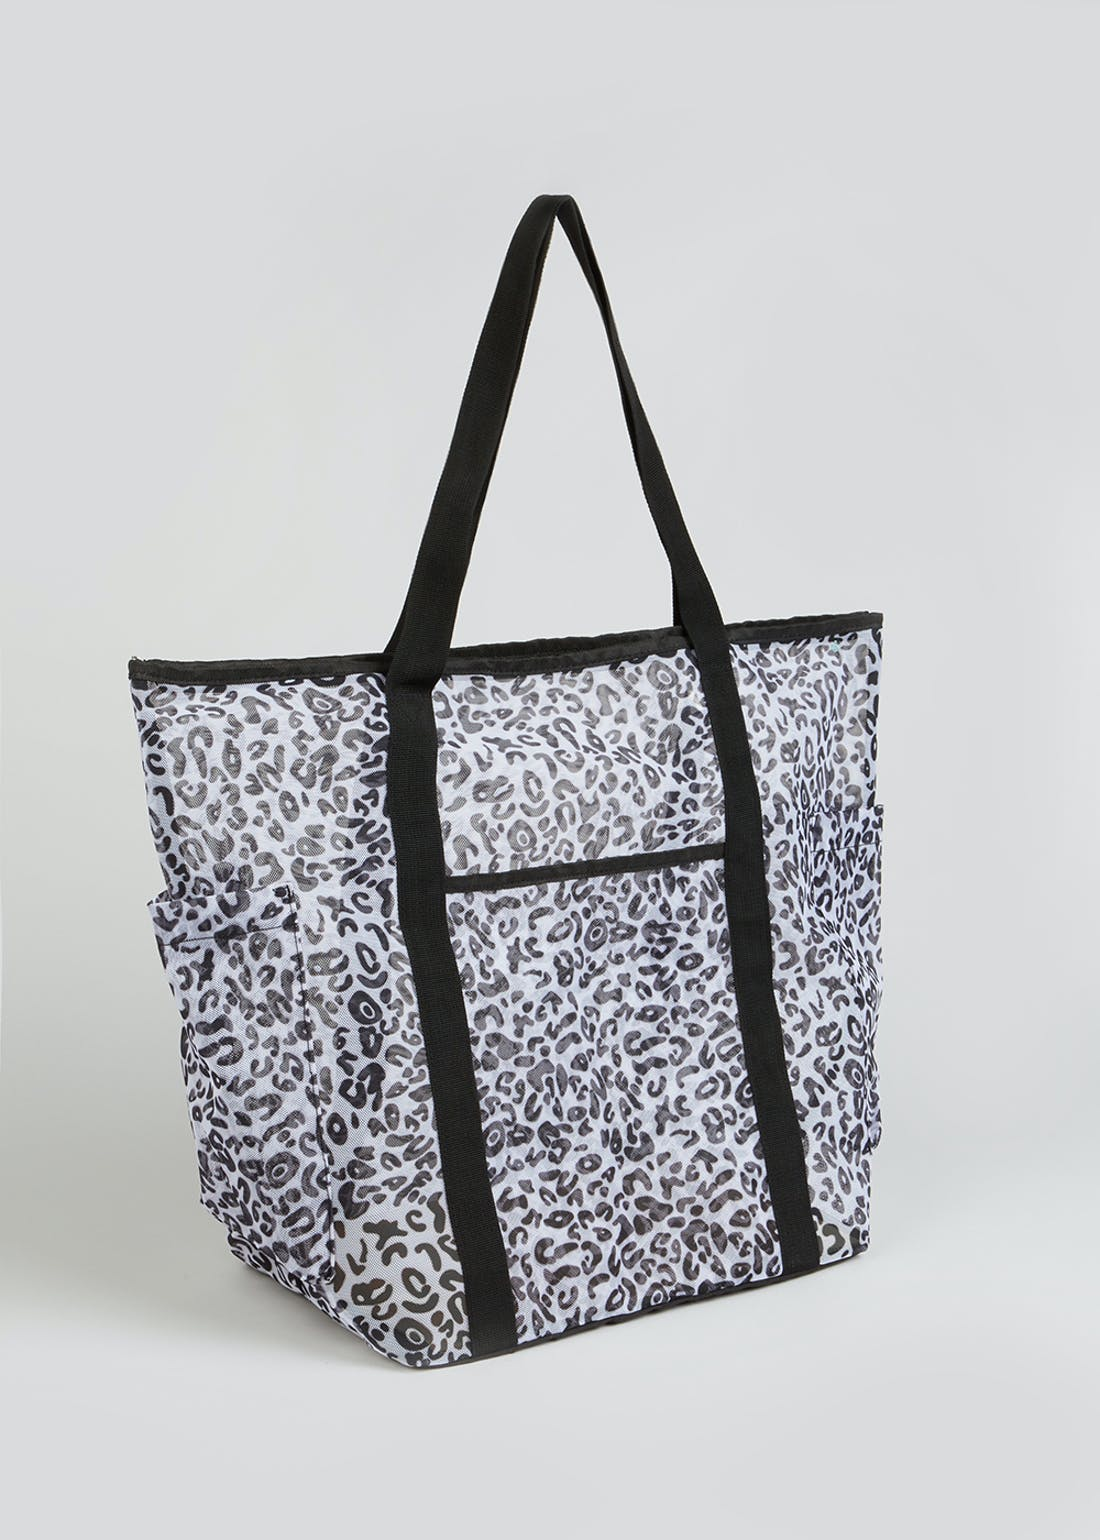 Leopard Print Beach Bag